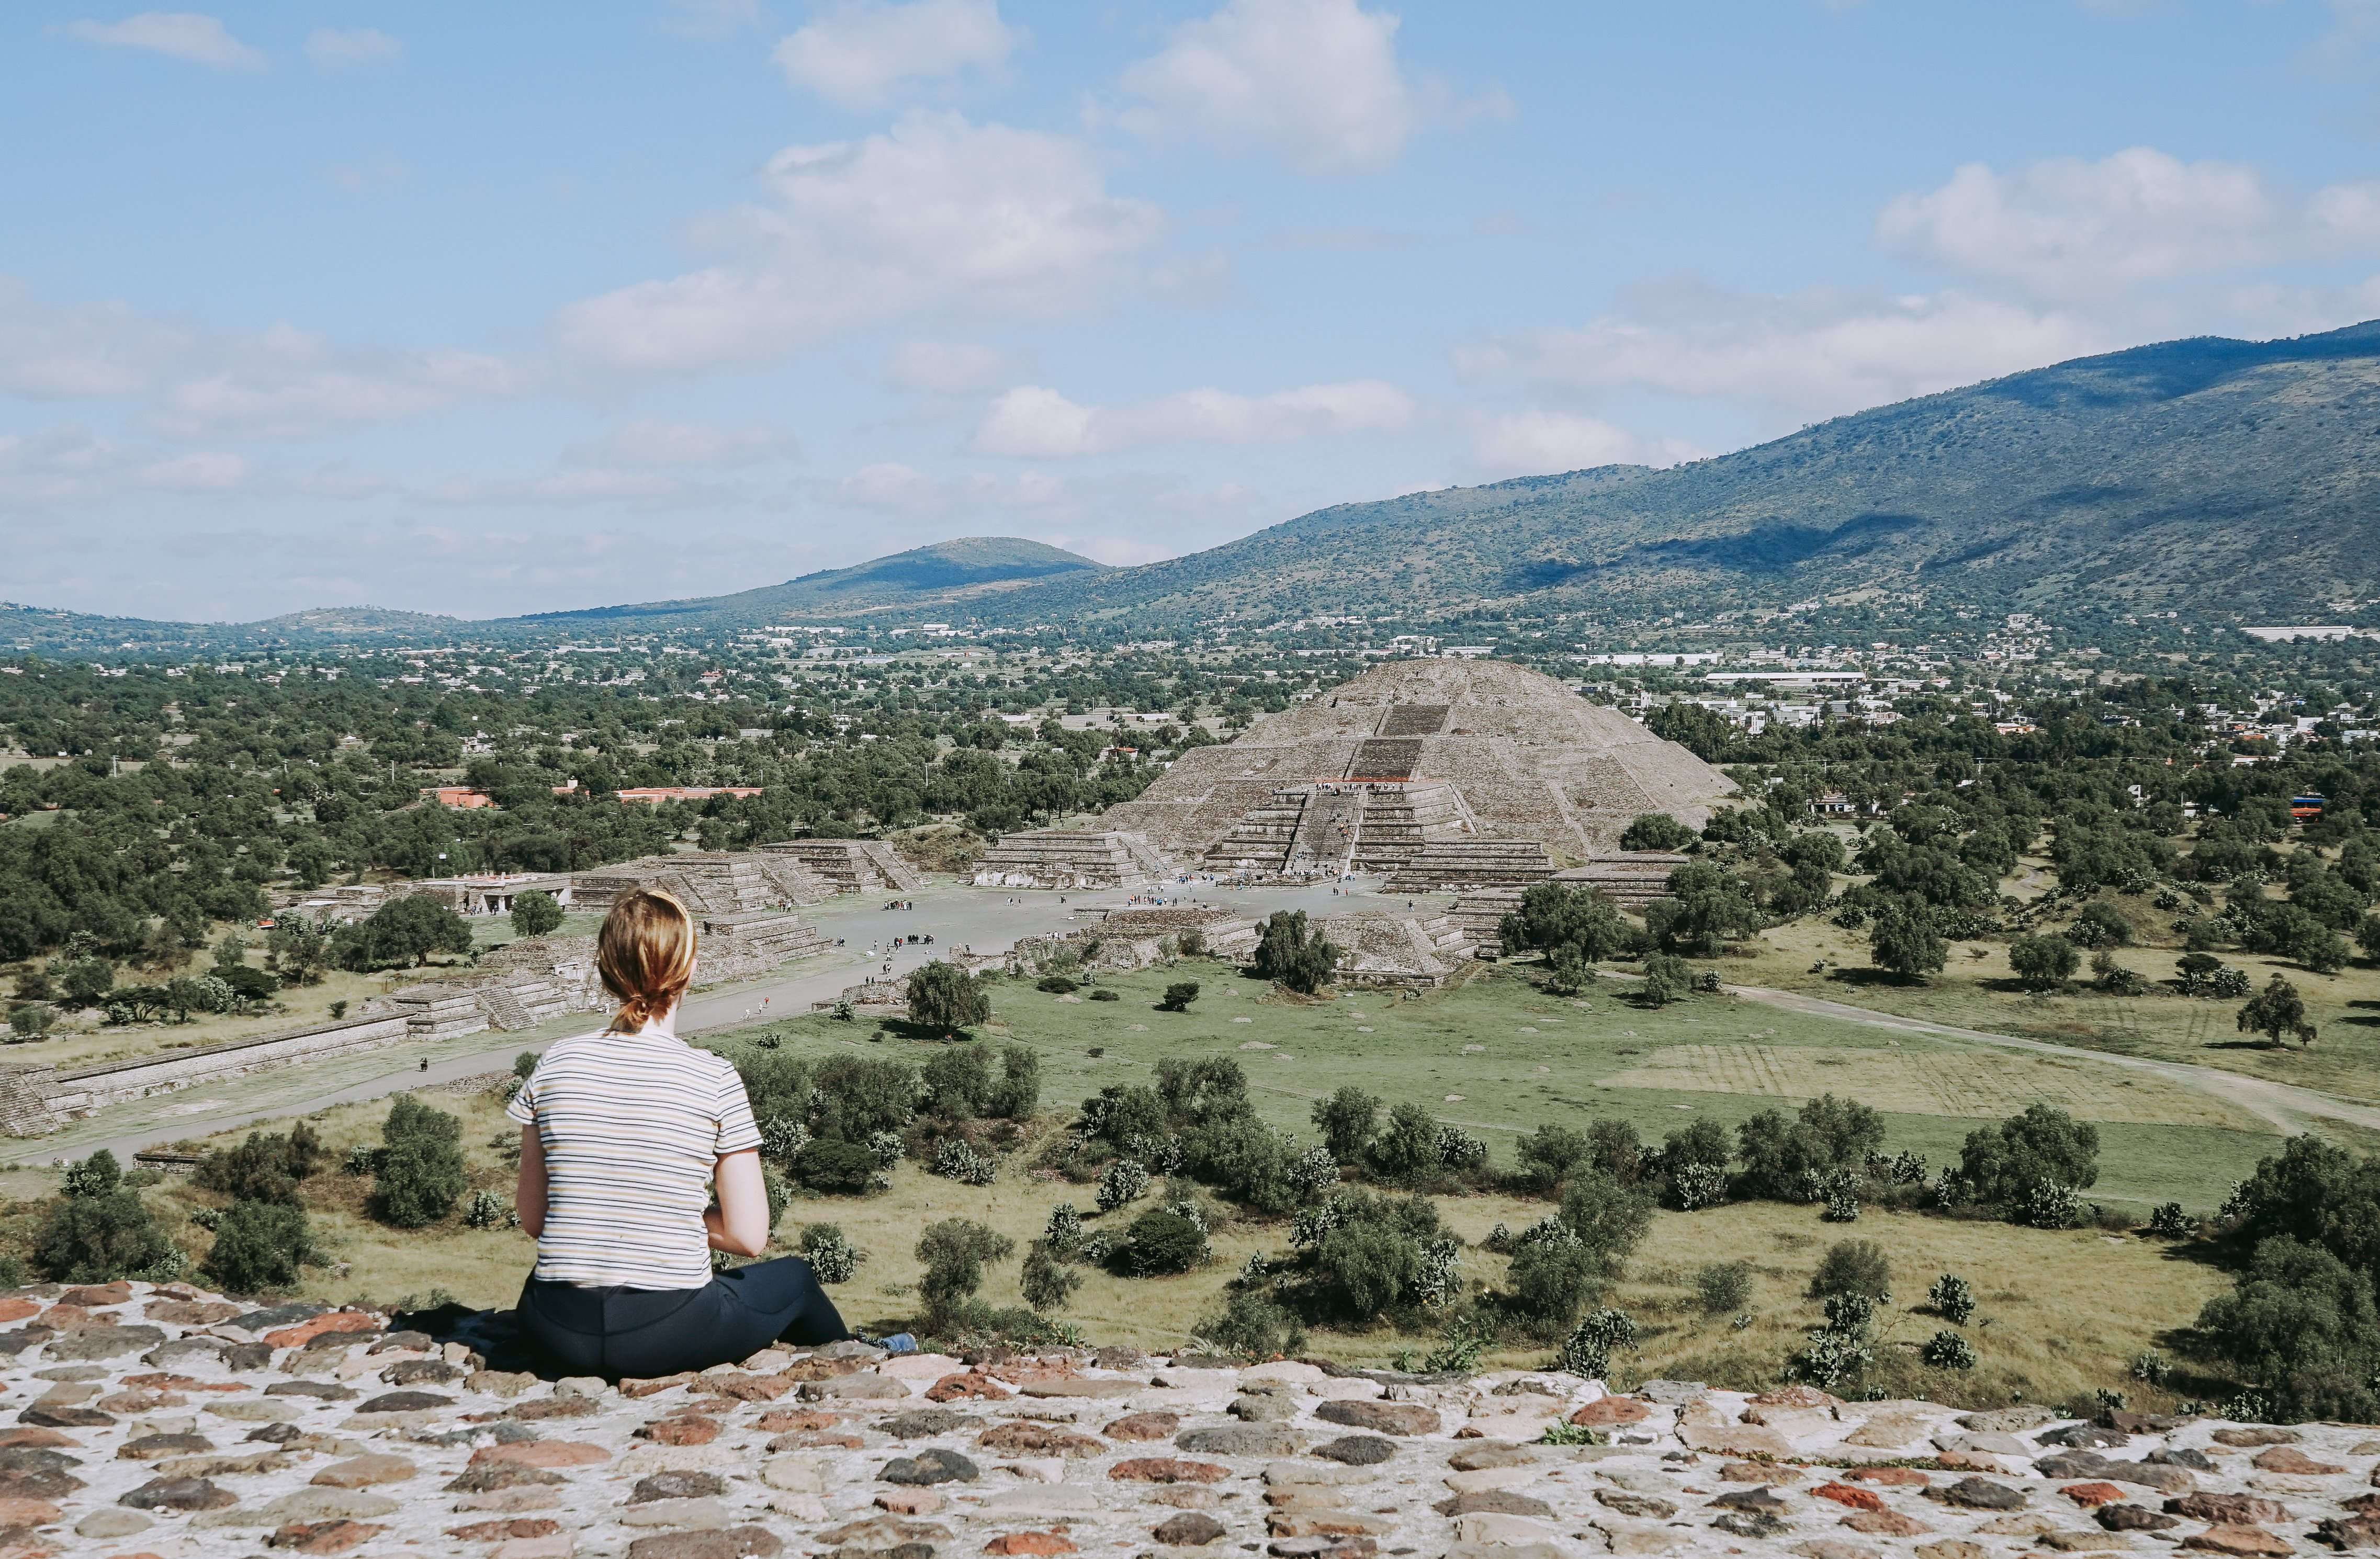 Teotihuacan Pyramids From Mexico City: Ancient History Just An Hour From the City